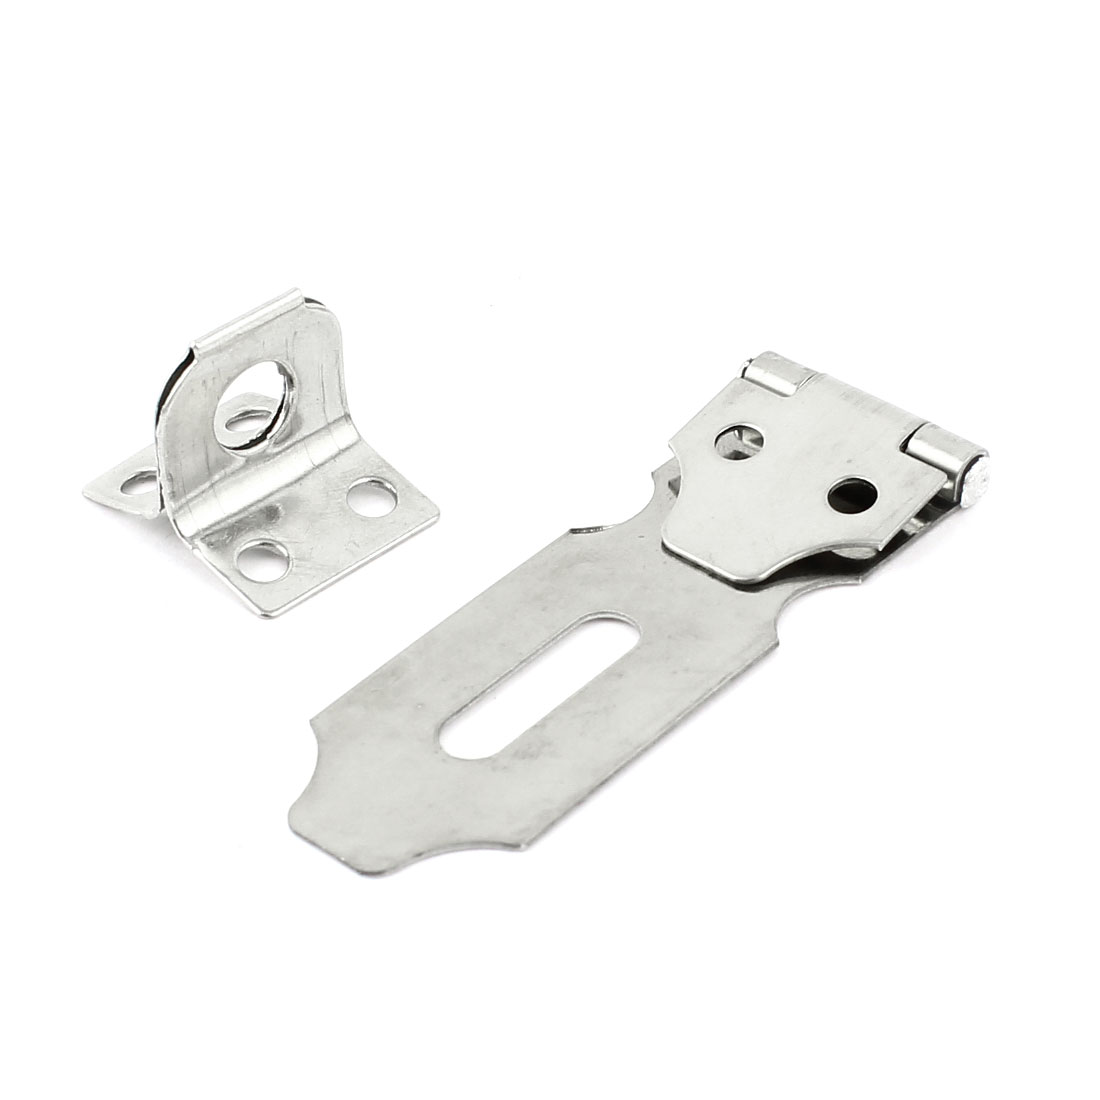 Cabinet Drawer Door Latch Stainless Steel Padlock Hasp Staple Set 7.5cm Long(China (Mainland))